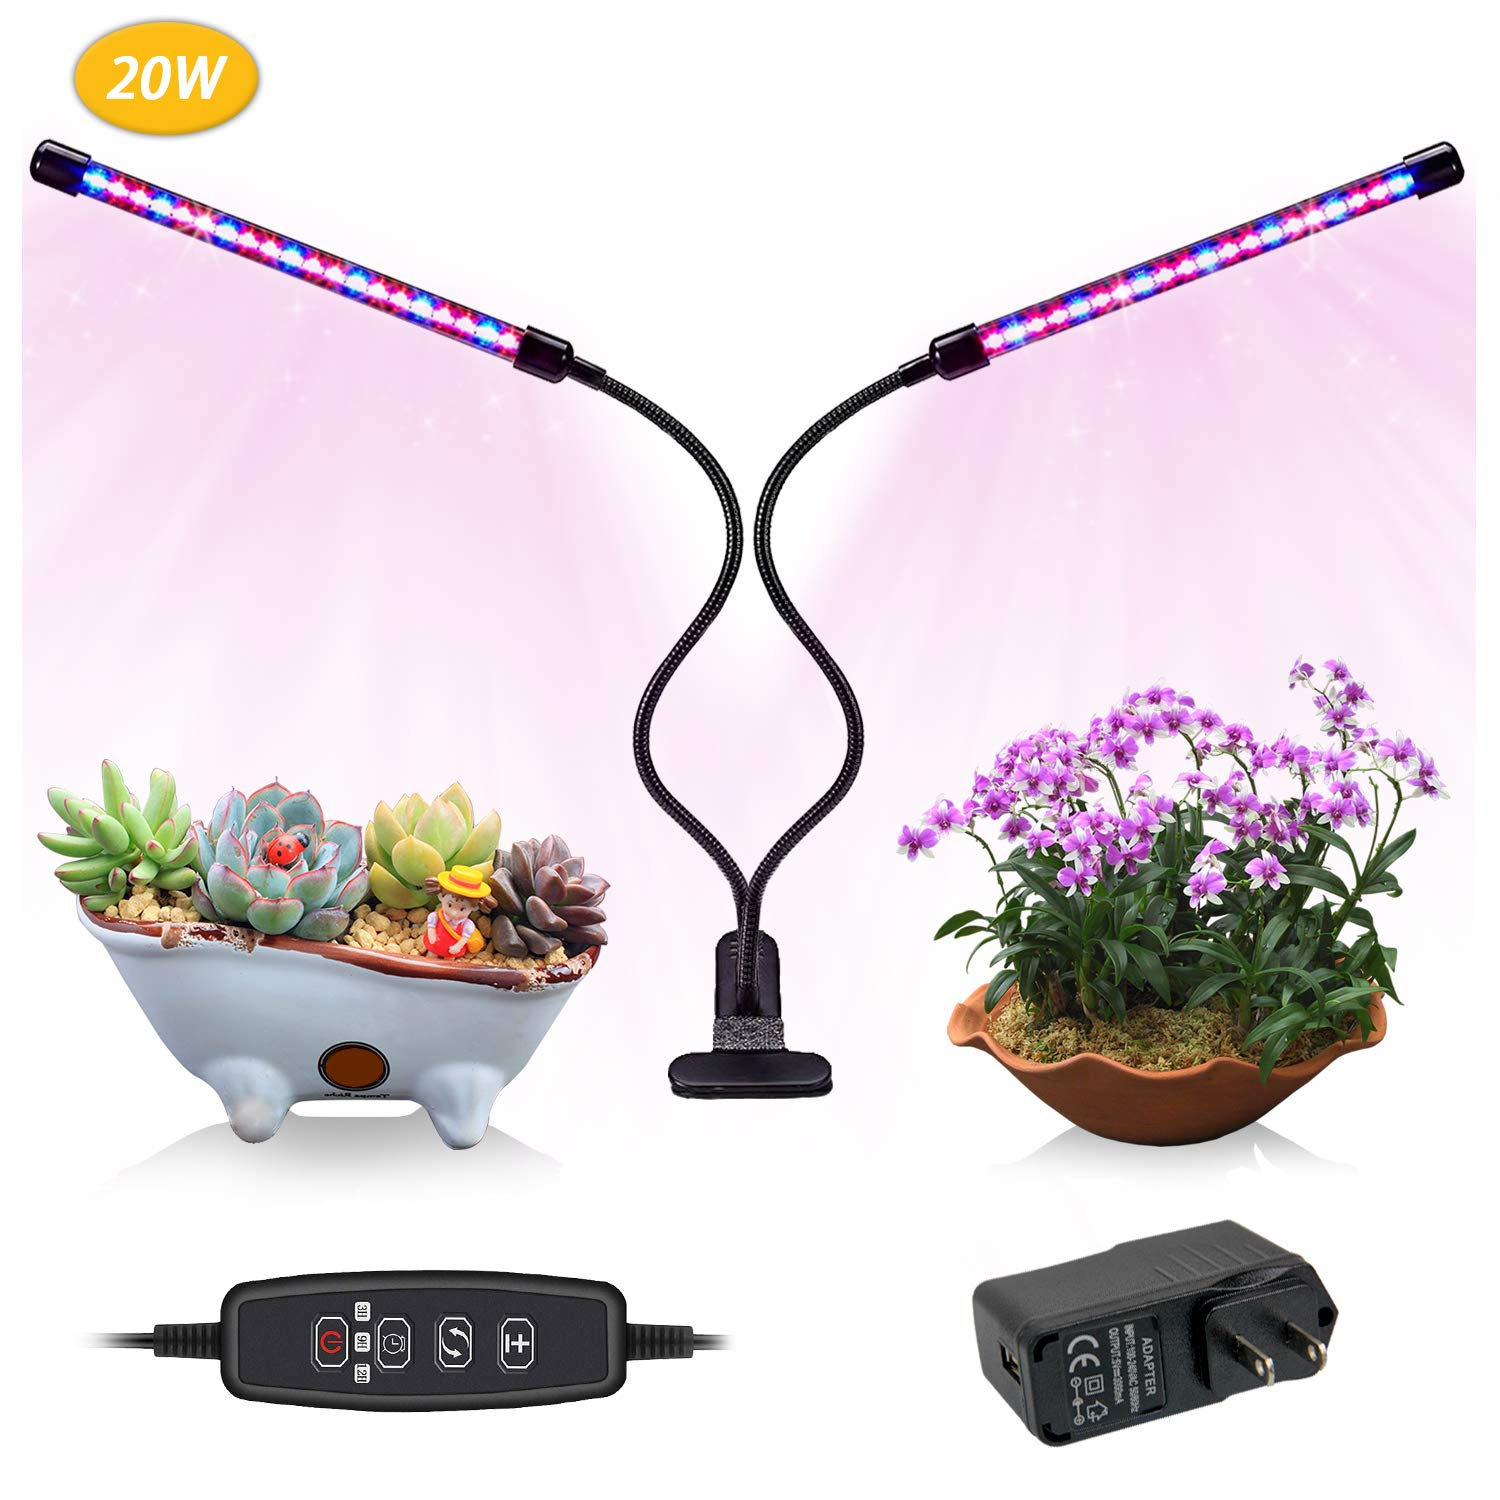 Indoor Grow Light,JEKOMI 20W Timming Plant Grow Lamp with 40 LED Bulbs,9 Dimmable Levels,Red Blue Spectrum,3/9/12H Timer,3 Switch Modes